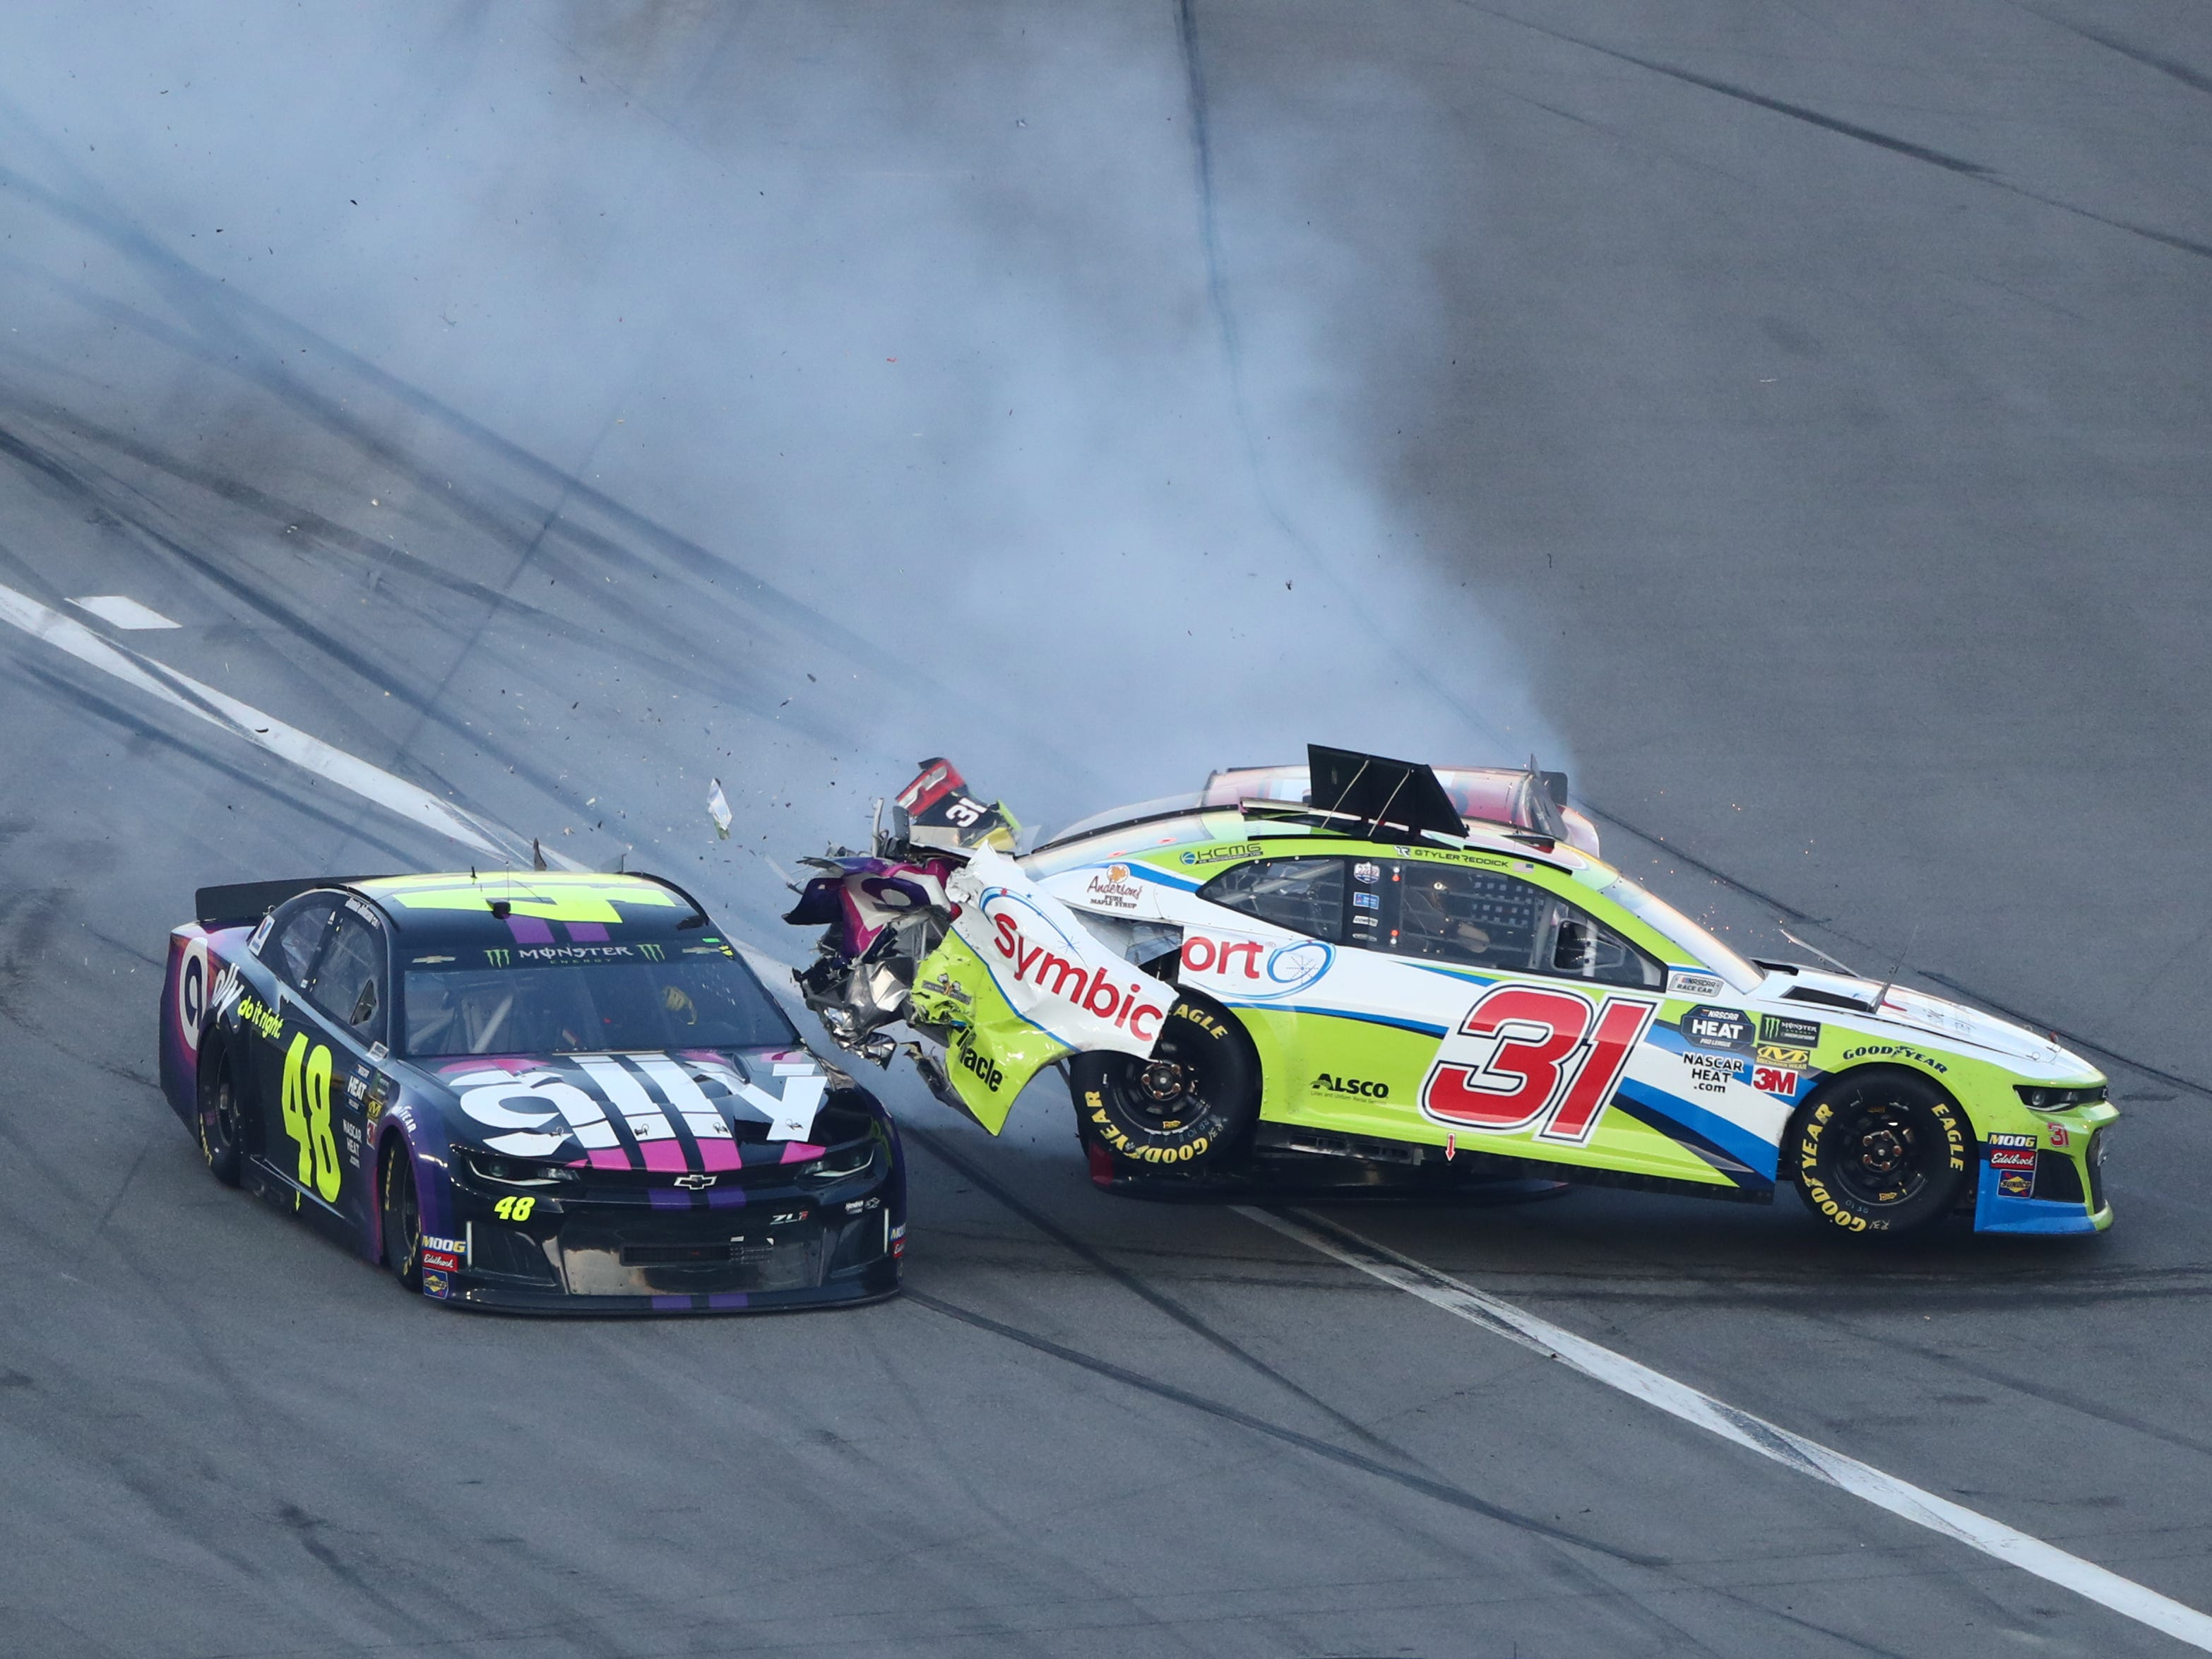 NASCAR Cup Series driver Tyler Reddick (31) collides with Jimmie Johnson (48) entering pit road during the Daytona 500 at Daytona International Speedway.